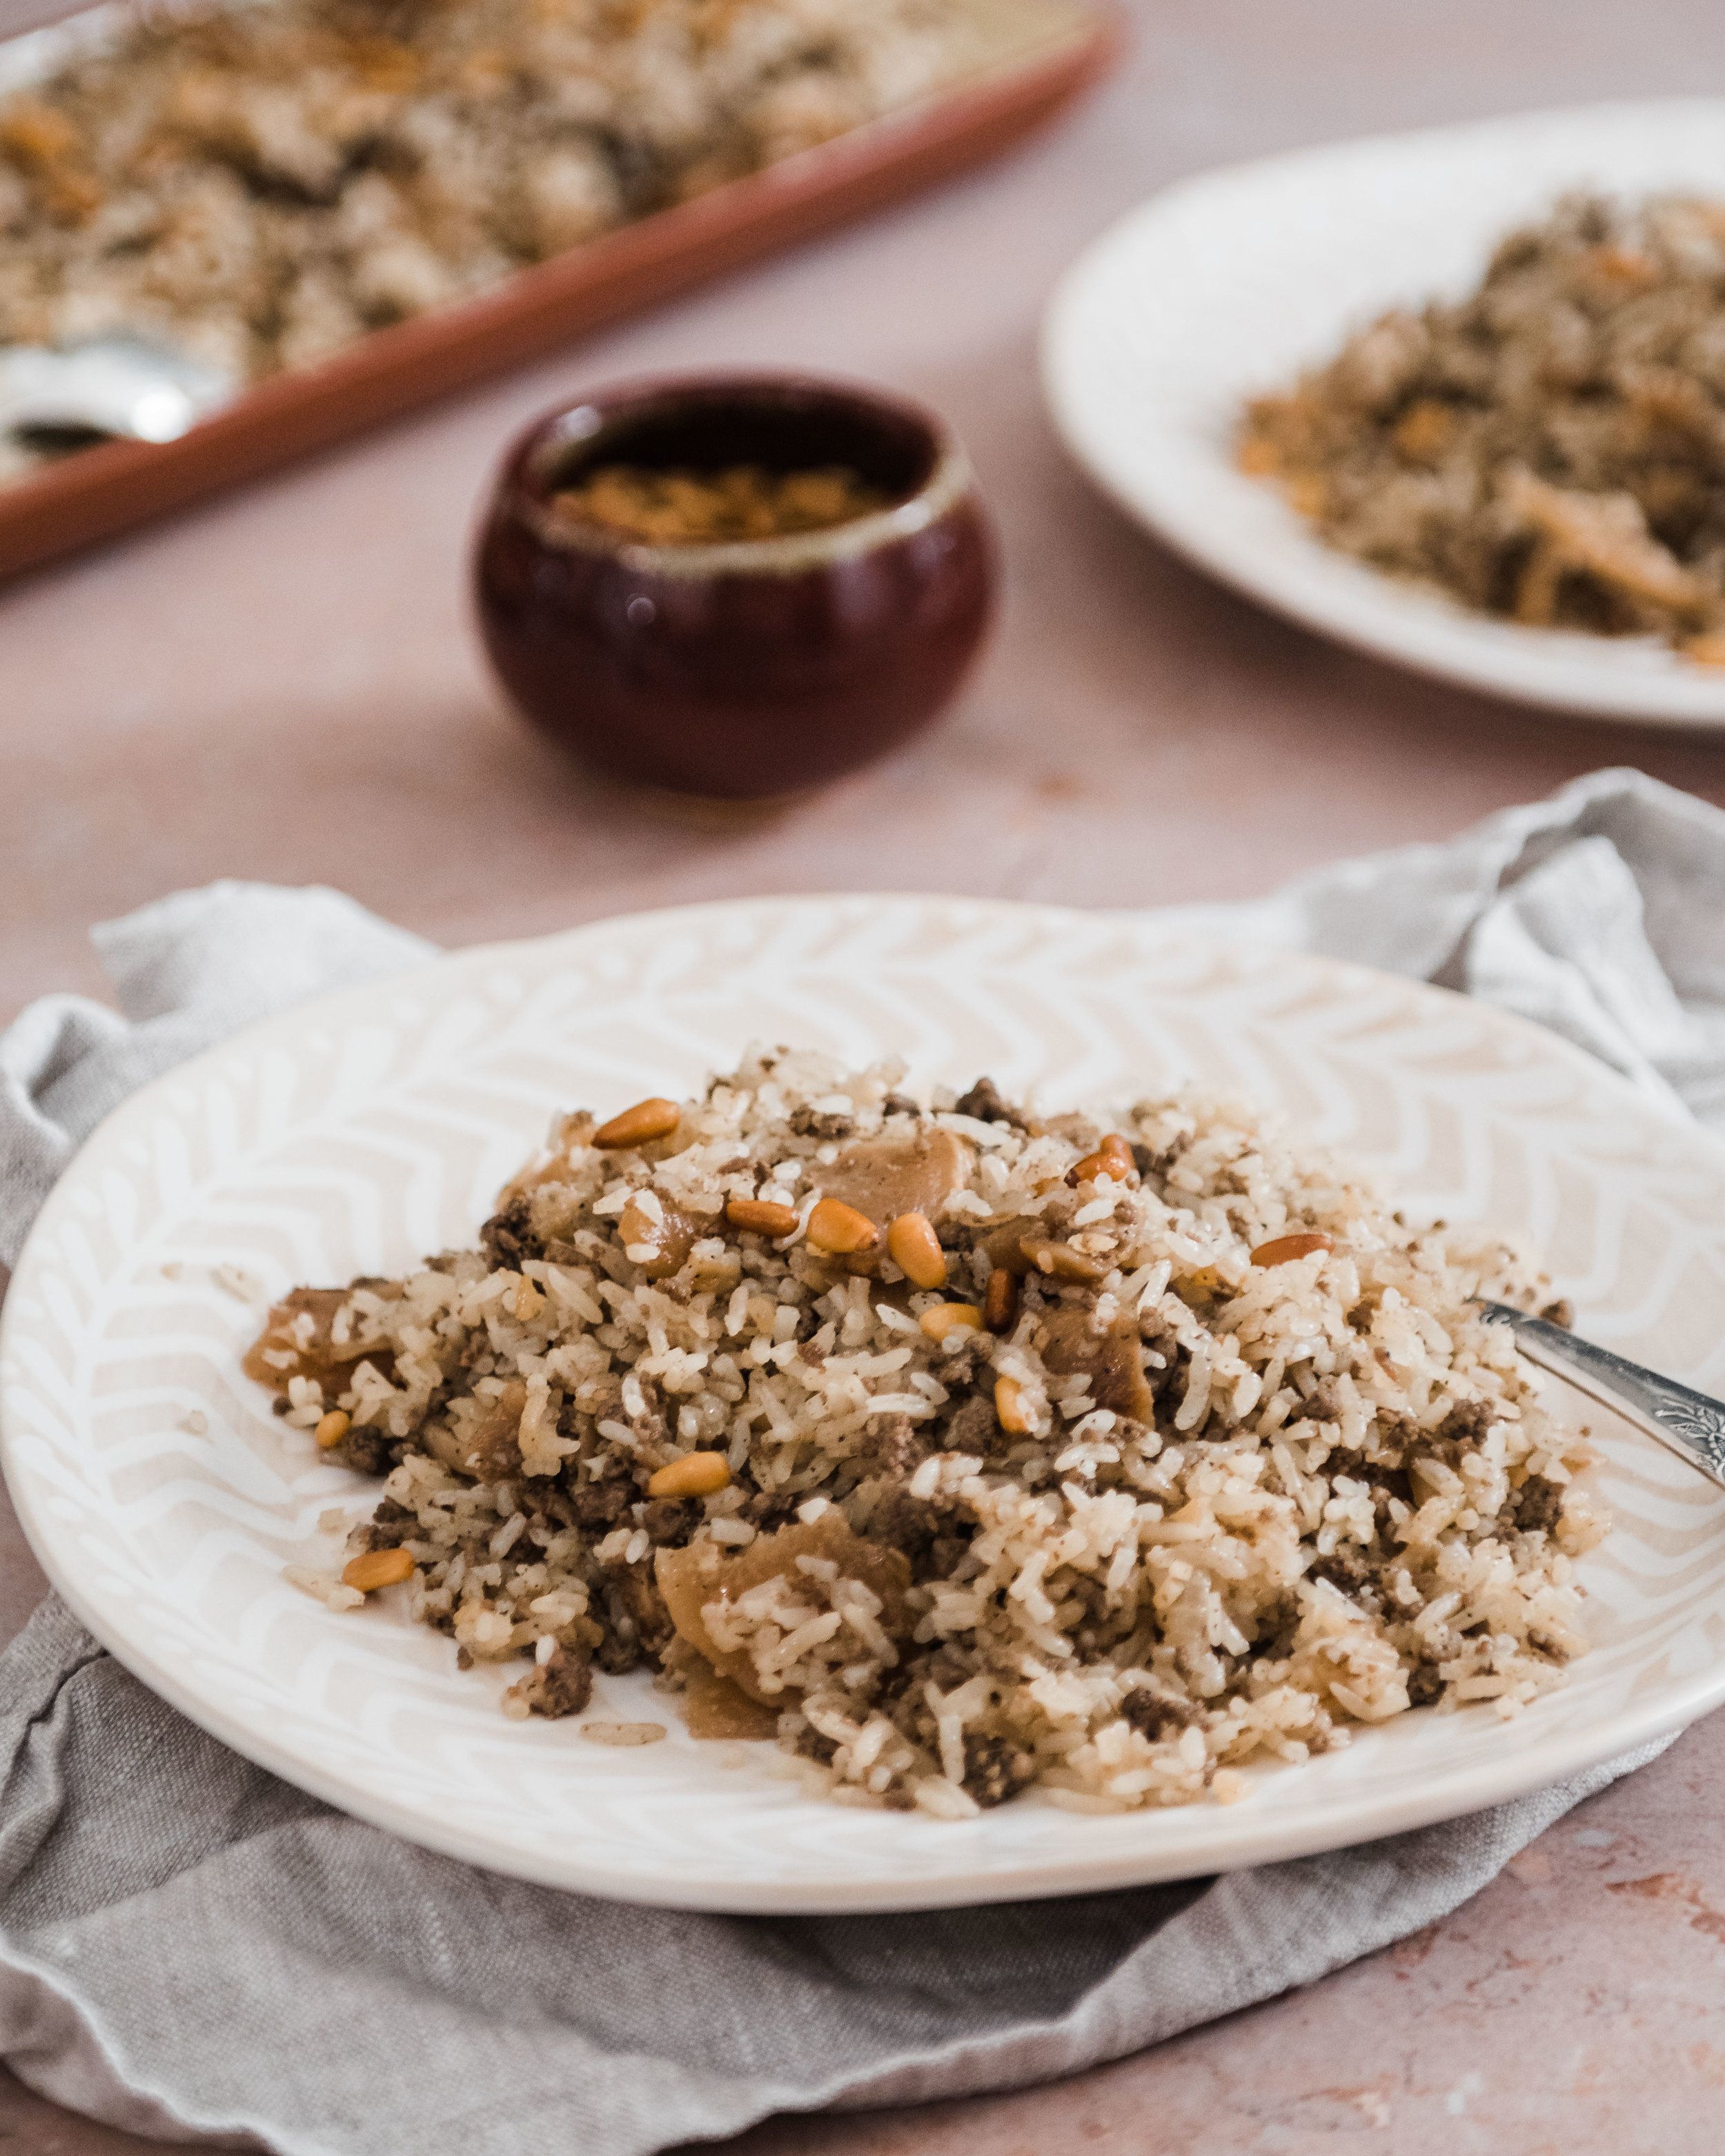 Shelbato (Kohlrabi with Ground Meat, Rice and Pine Nuts)